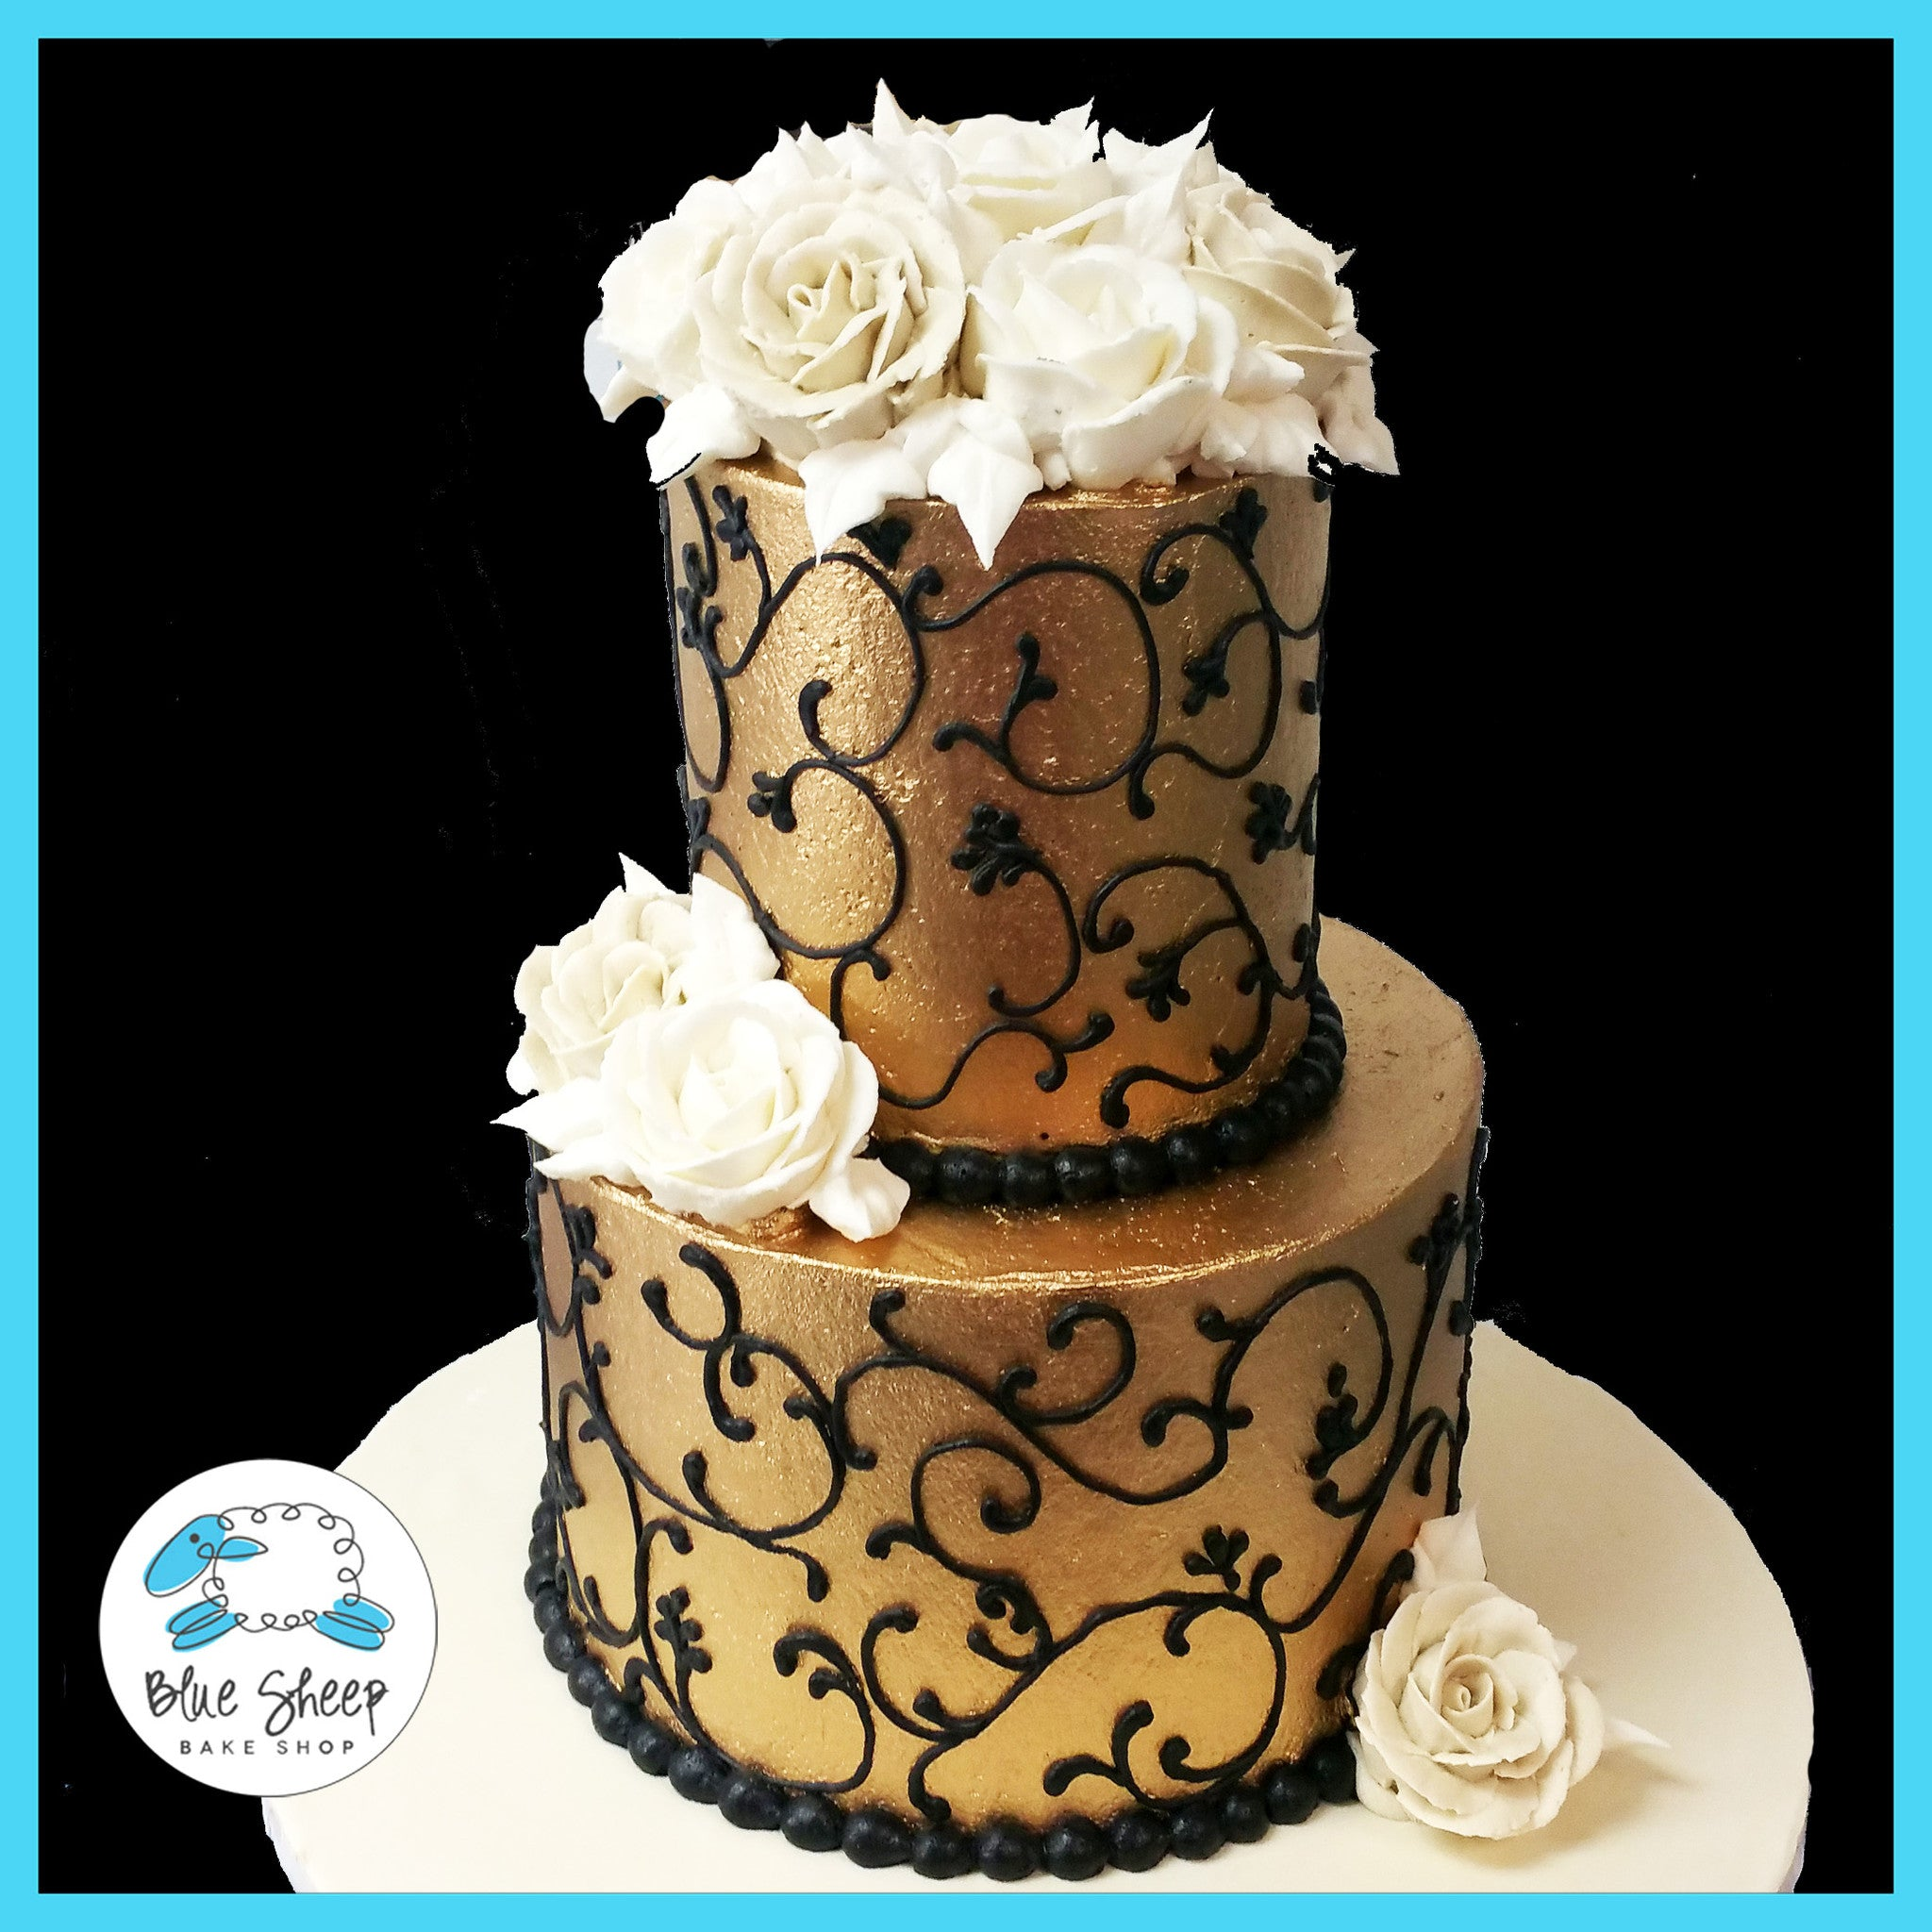 Gold And Black Buttercream Birthday Cake Blue Sheep Bake Shop